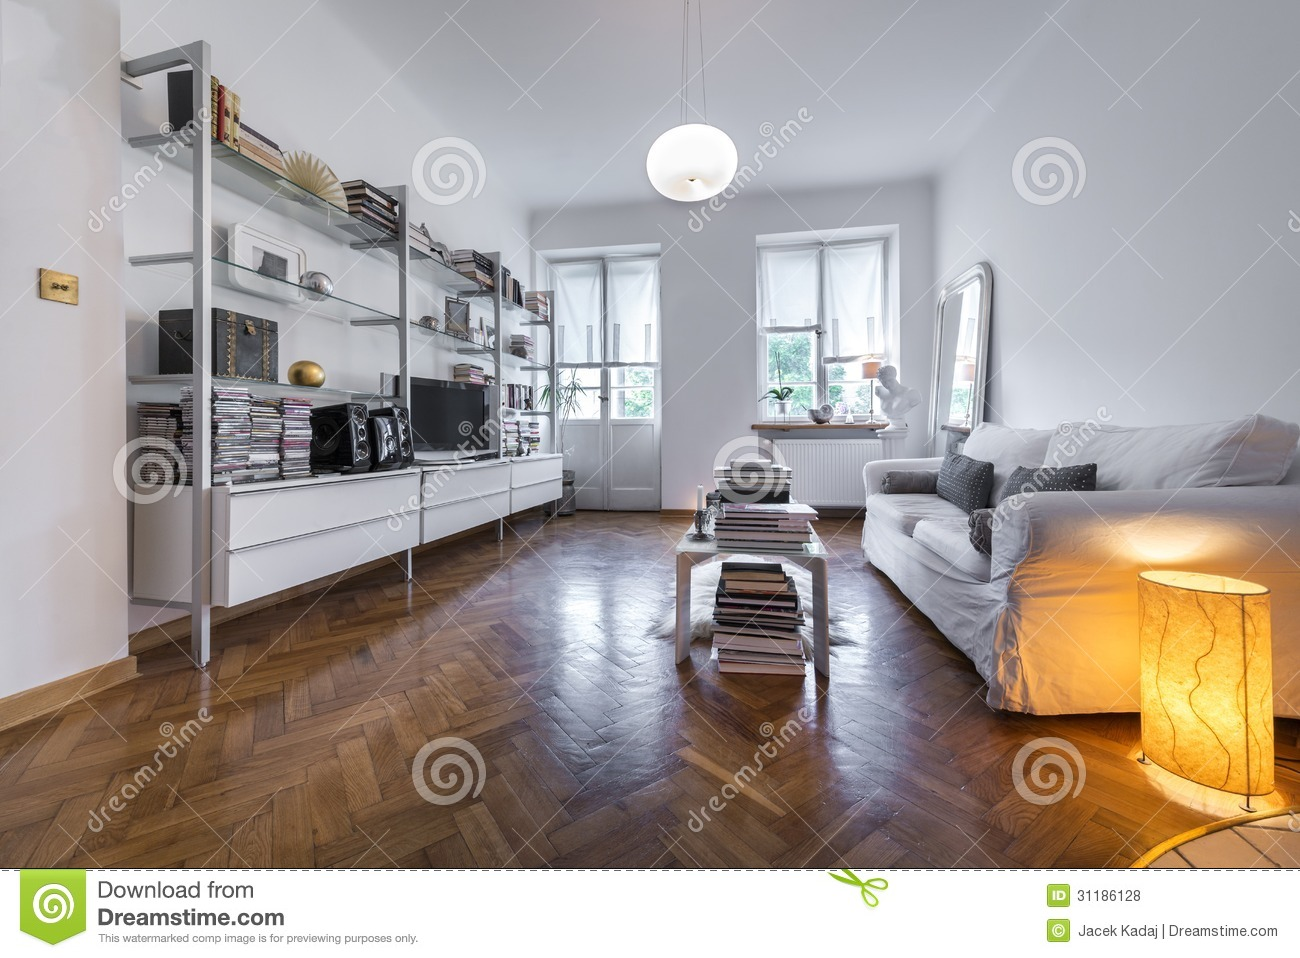 Post Modern Interior Design Stock Images - Image: 31186124